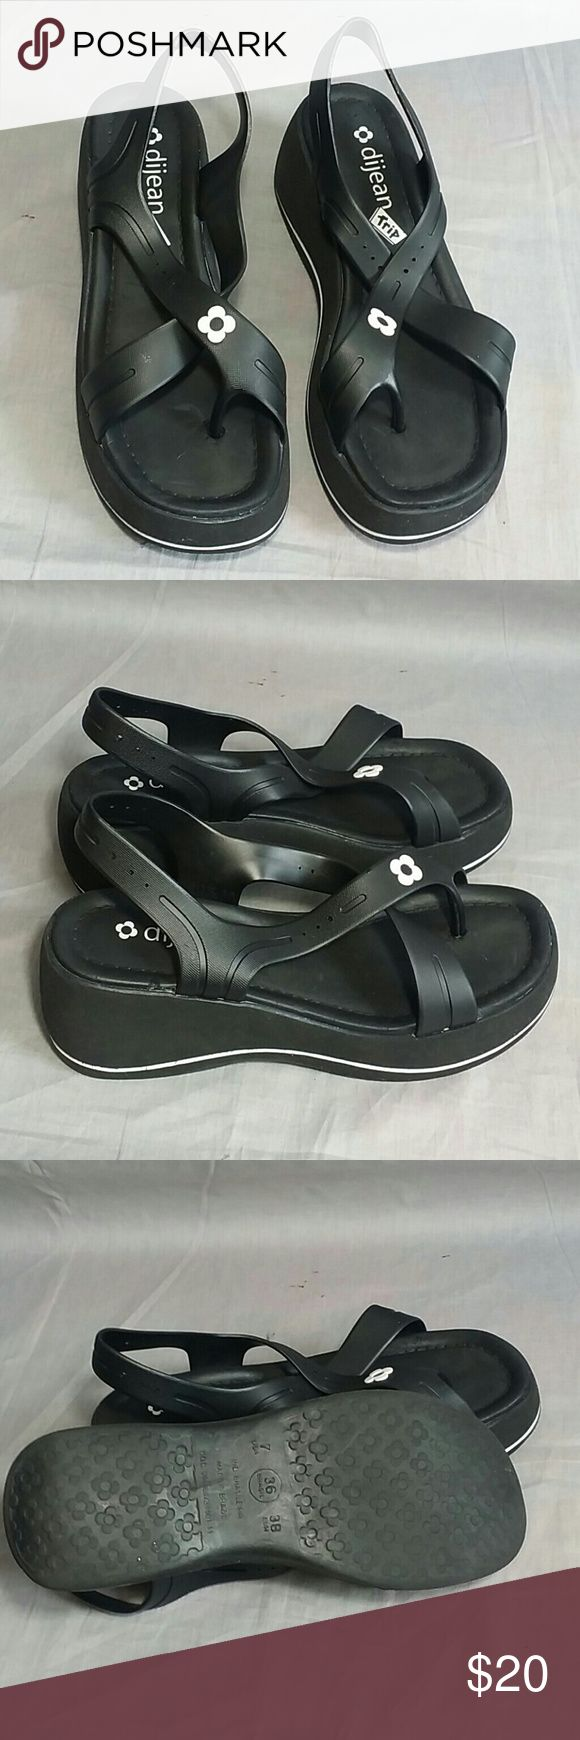 Dijean trip Sandals Black Size 7 M Ankle strap Item is in a good condition, NO PETS AND SMOKE FREE. dijean Shoes Sandals